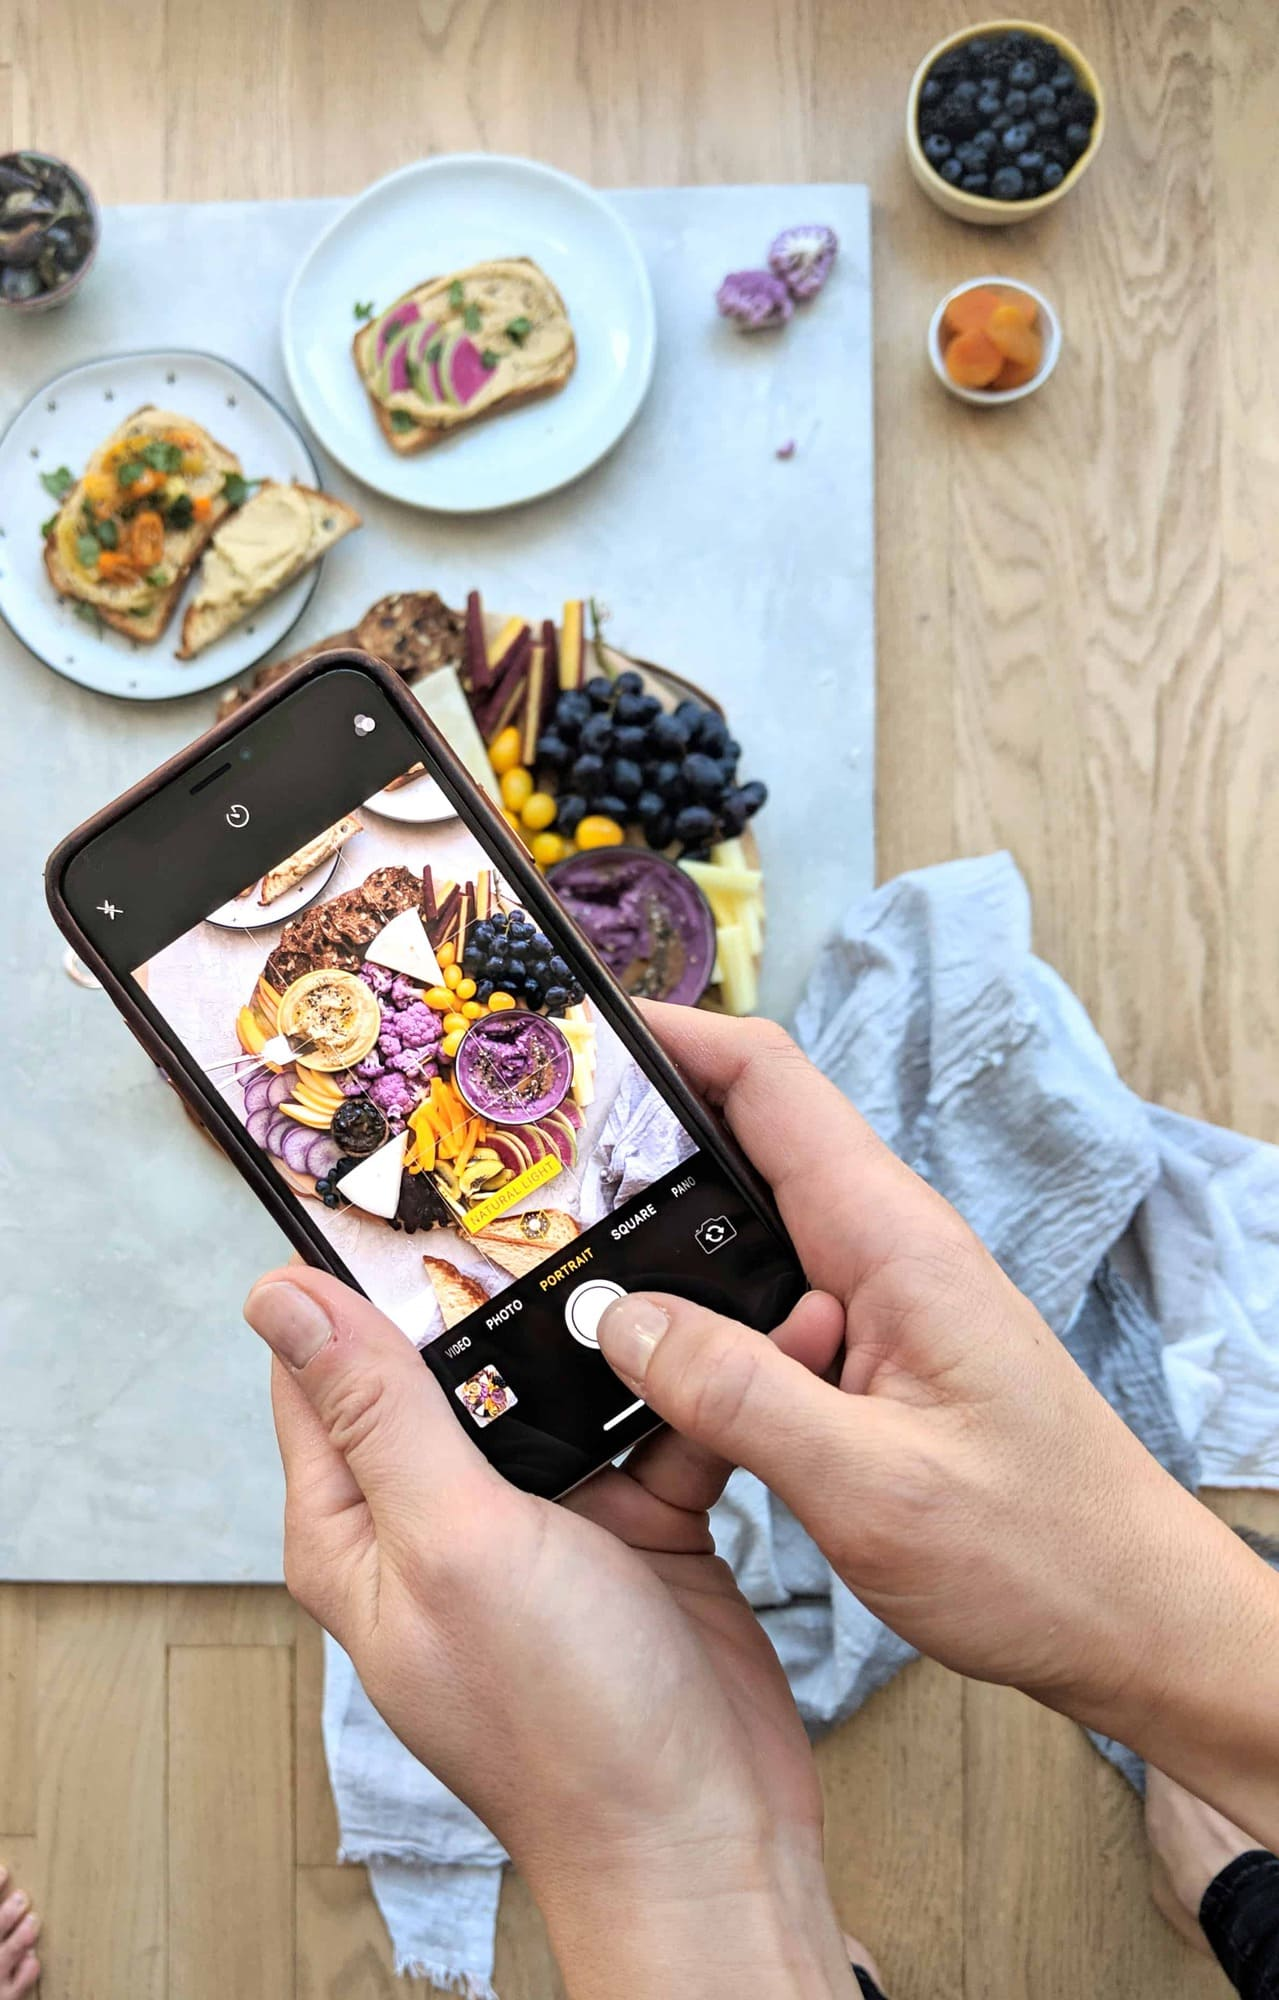 Photo of an iphone taking a photo of a yellow and purple hummus appetizer platter